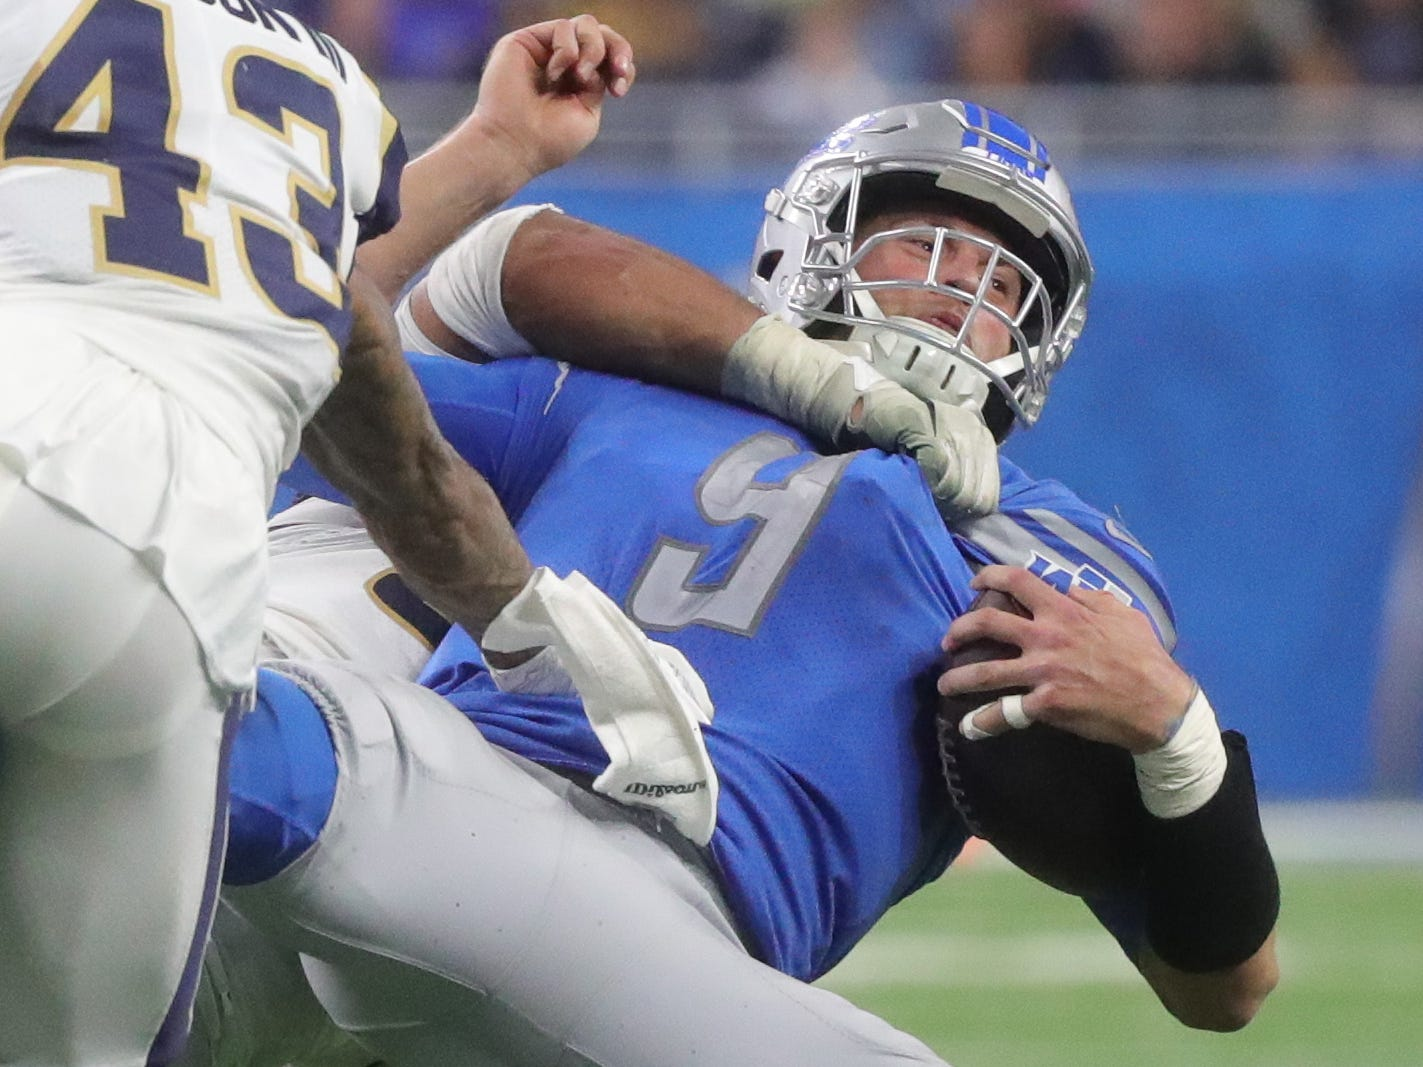 Lions quarterback Matthew Stafford is slammed to the ground by Rams defensive tackle Aaron Donald during the second half of the Lions' 30-16 loss on Sunday, Dec. 2, 2018, at Ford Field.